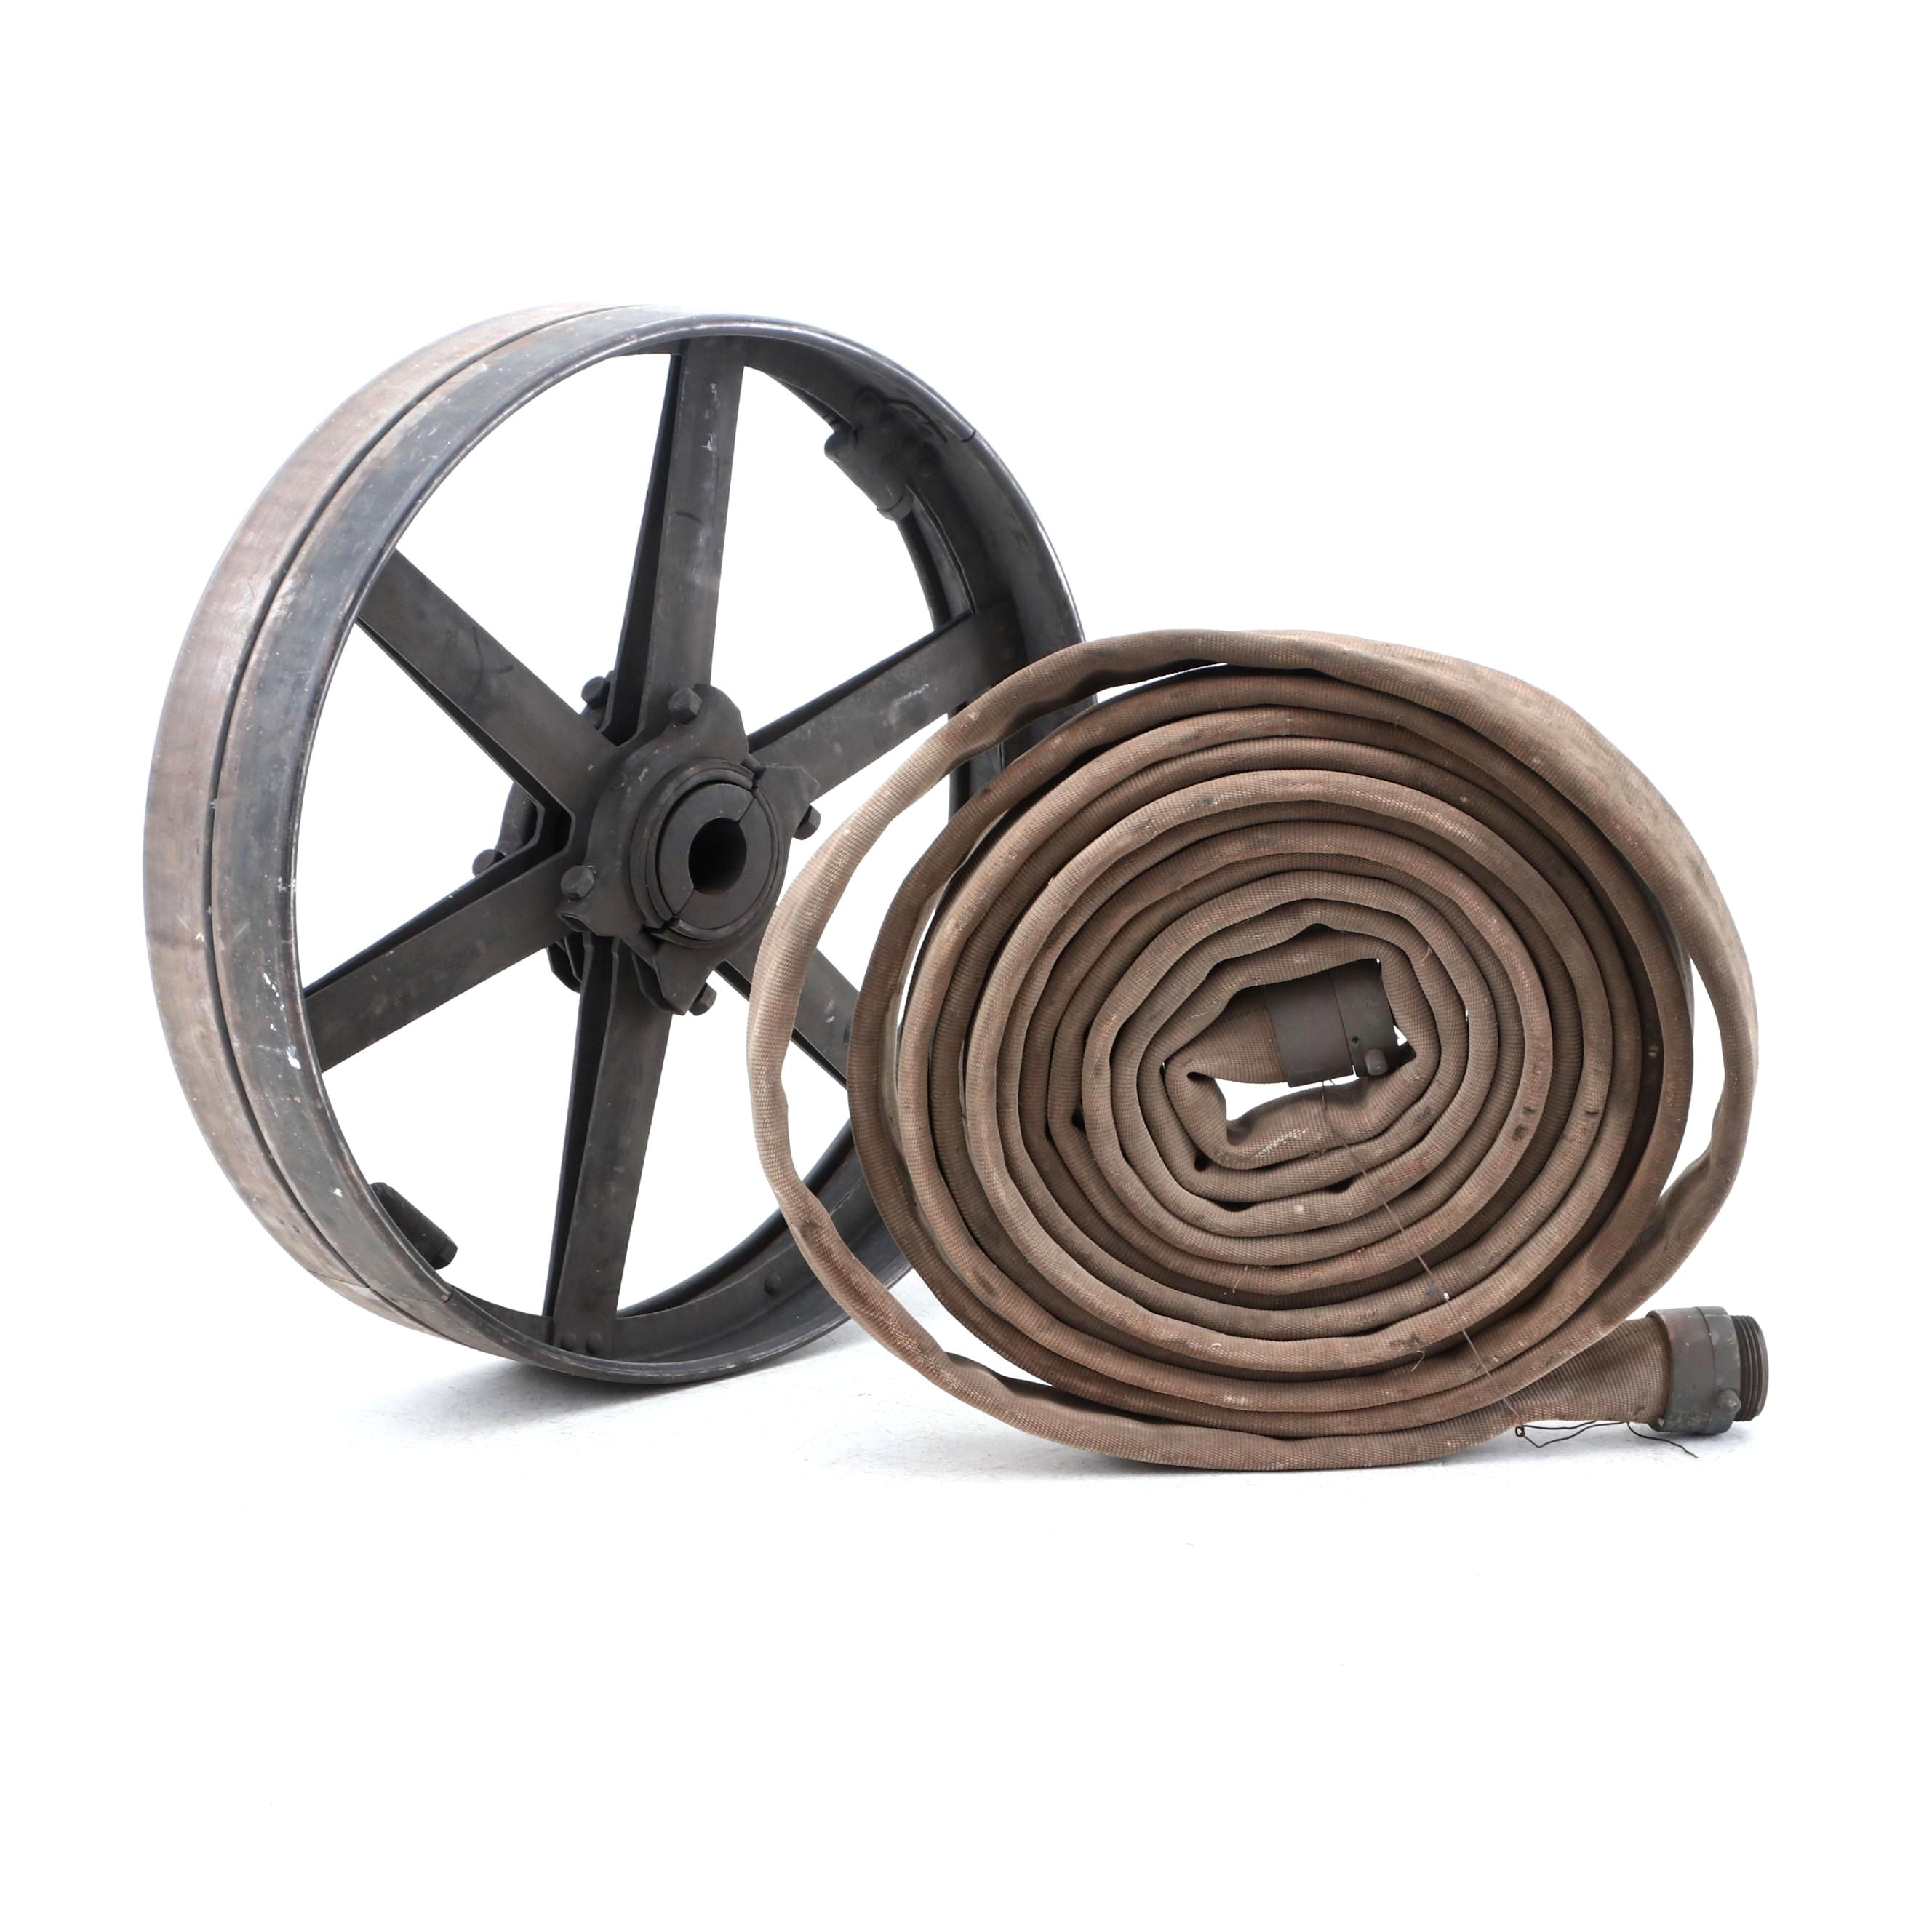 Canvas Firehose and Metal Wheel, Mid 20th Century